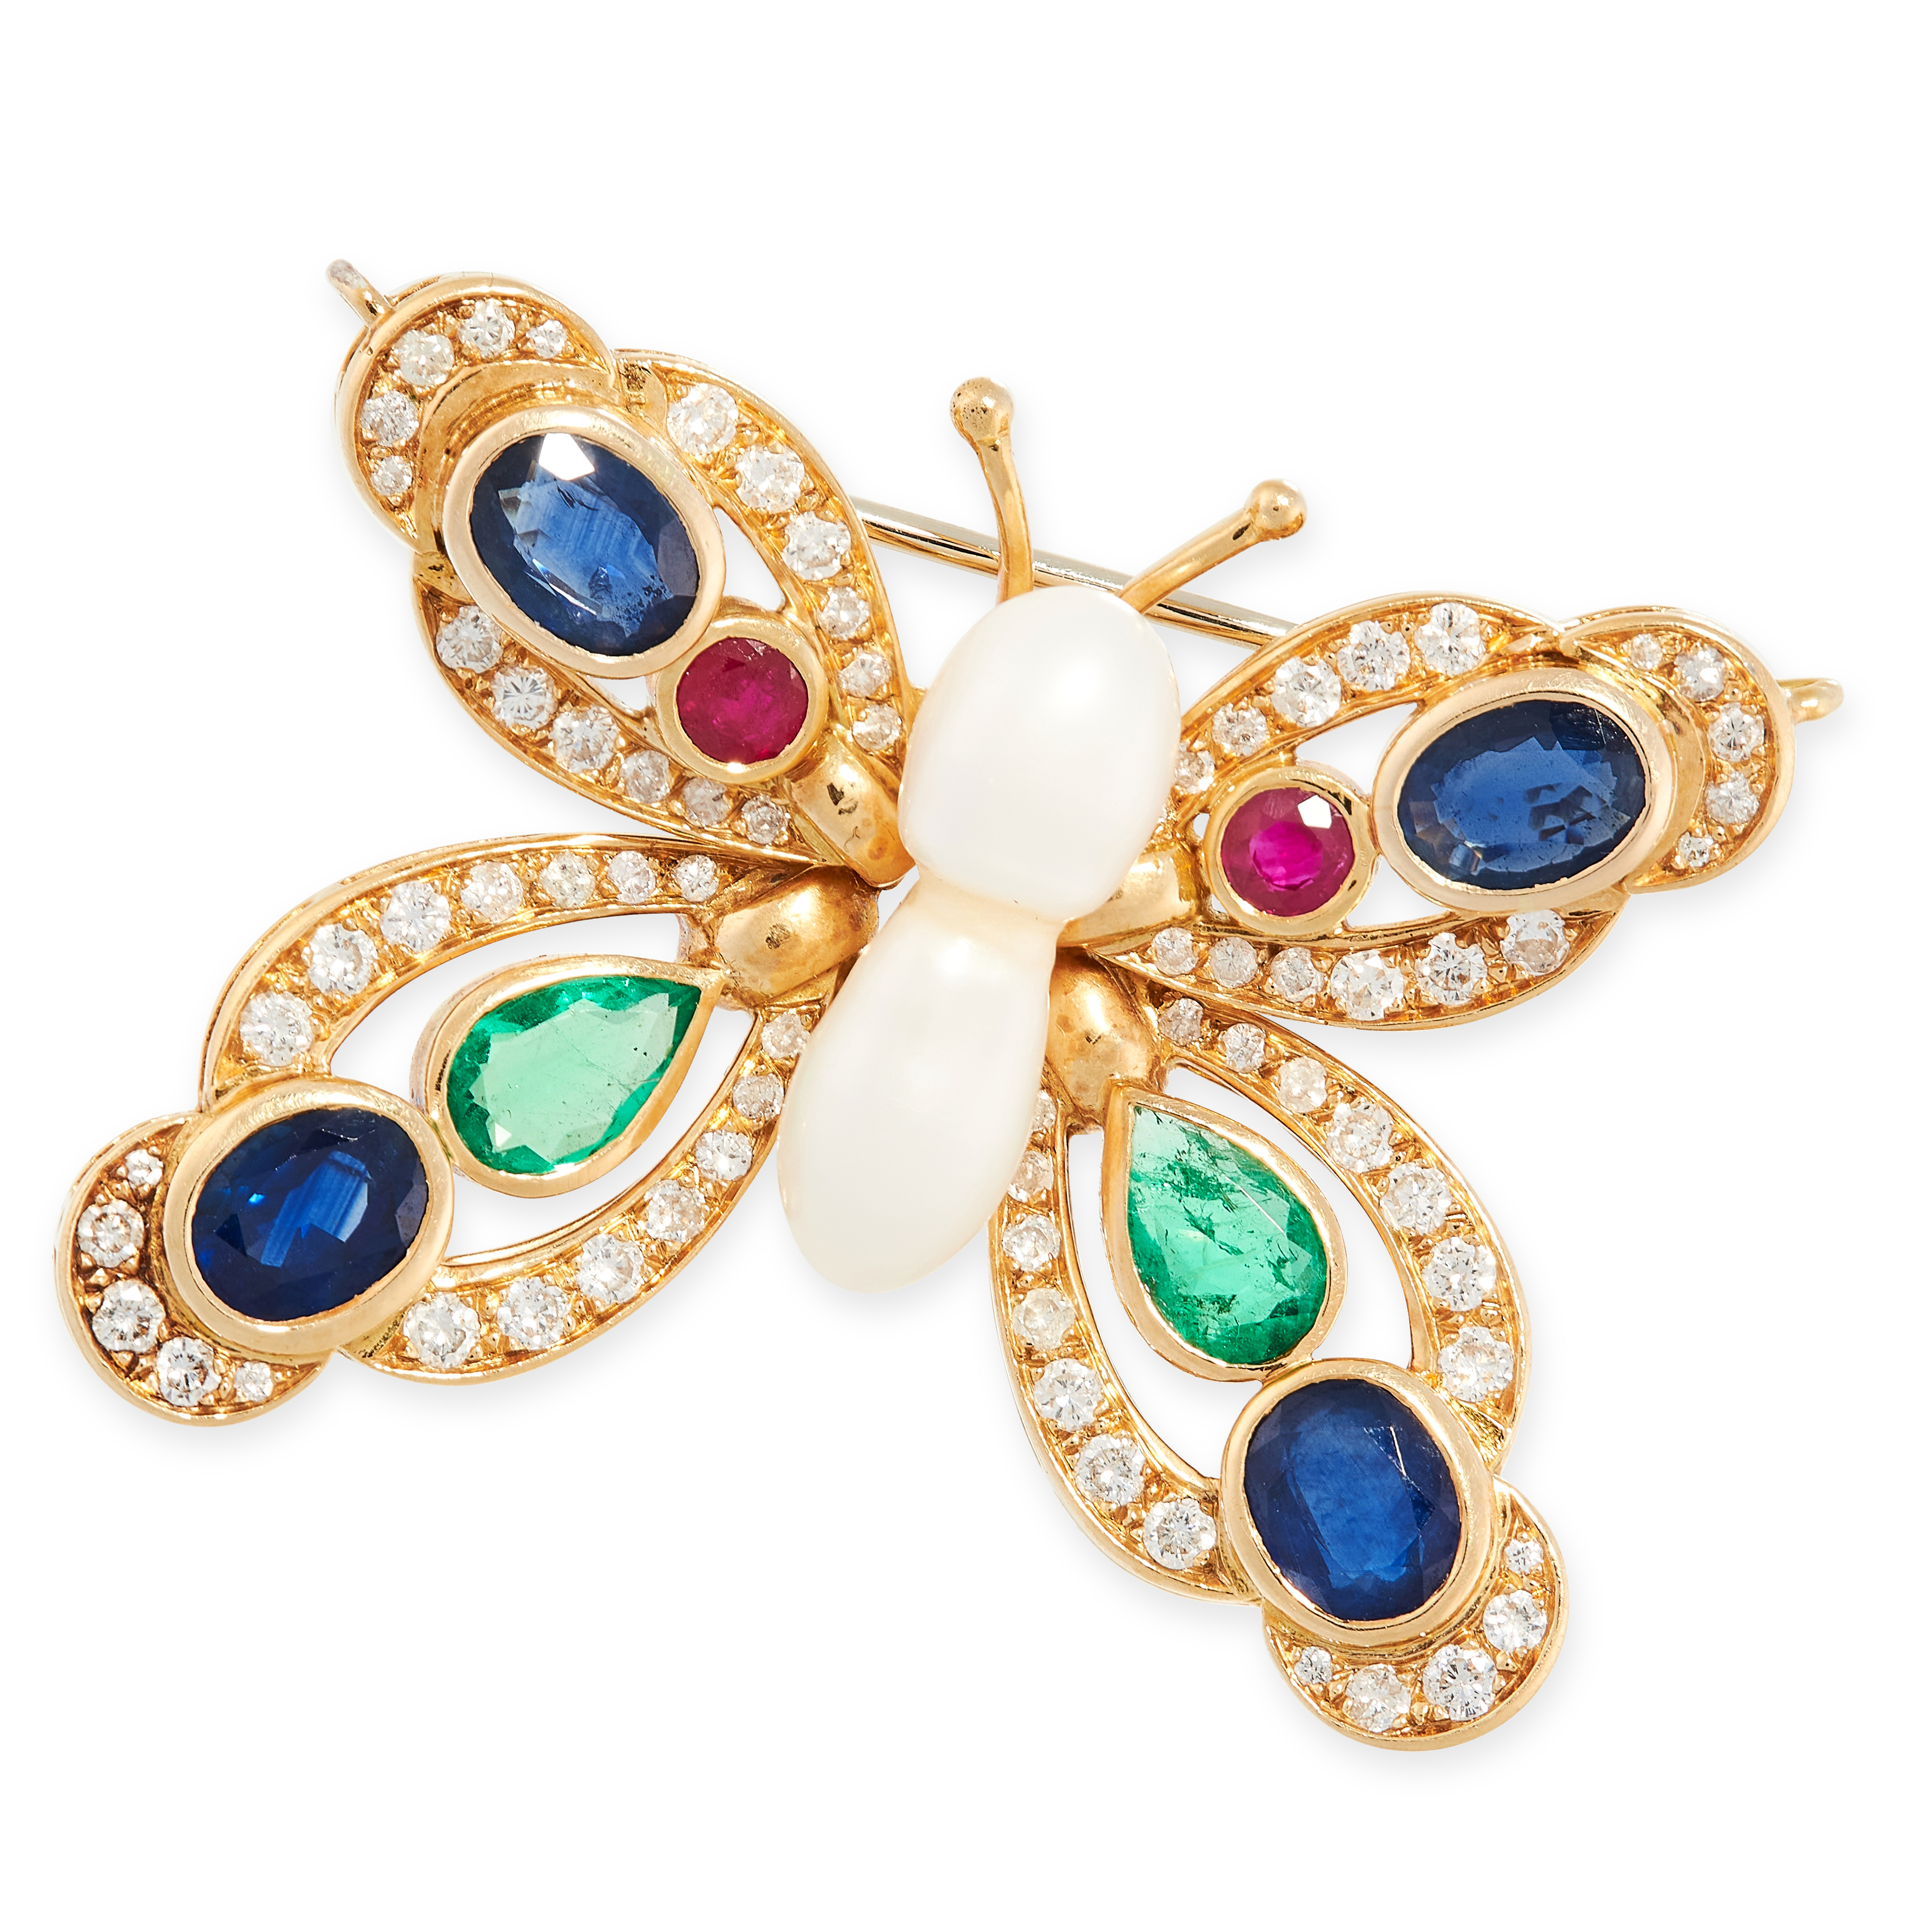 A PEARL, SAPPHIRE, RUBY, EMERALD AND DIAMOND BUTTERFLY BROOCH in 18ct yellow gold, designed as a